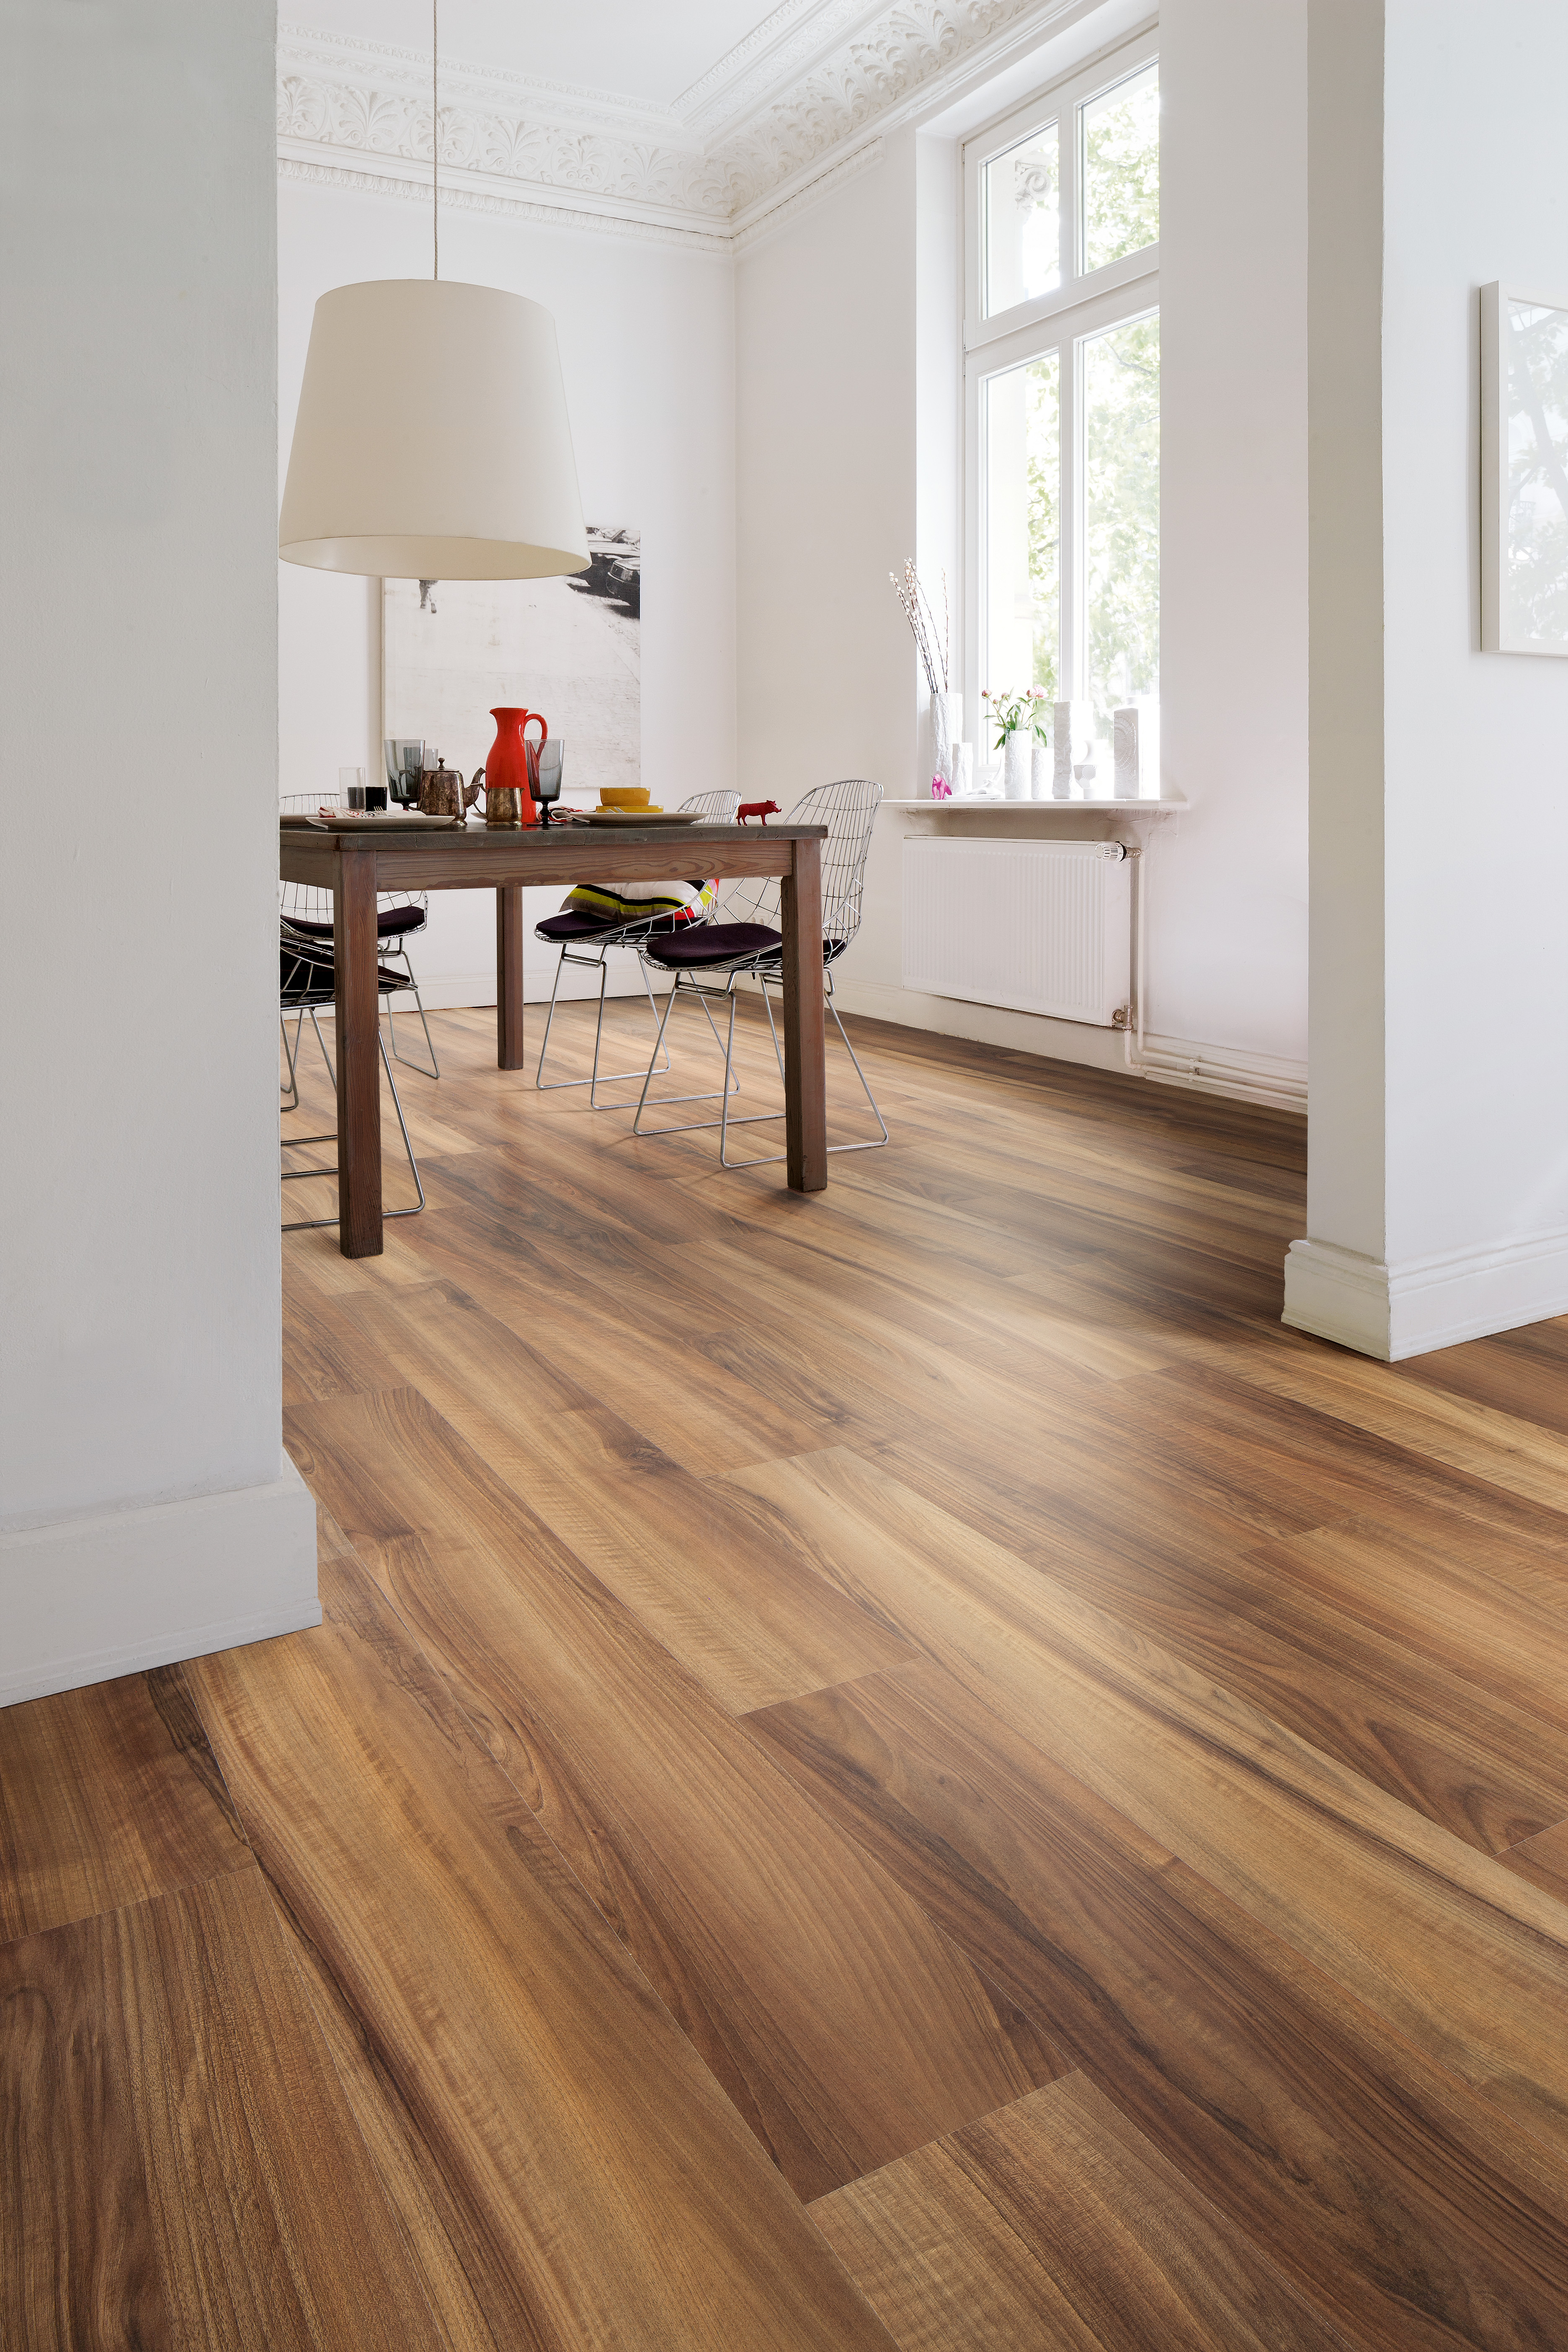 European laminate flooring displays a creative mix of for Laminate flooring displays